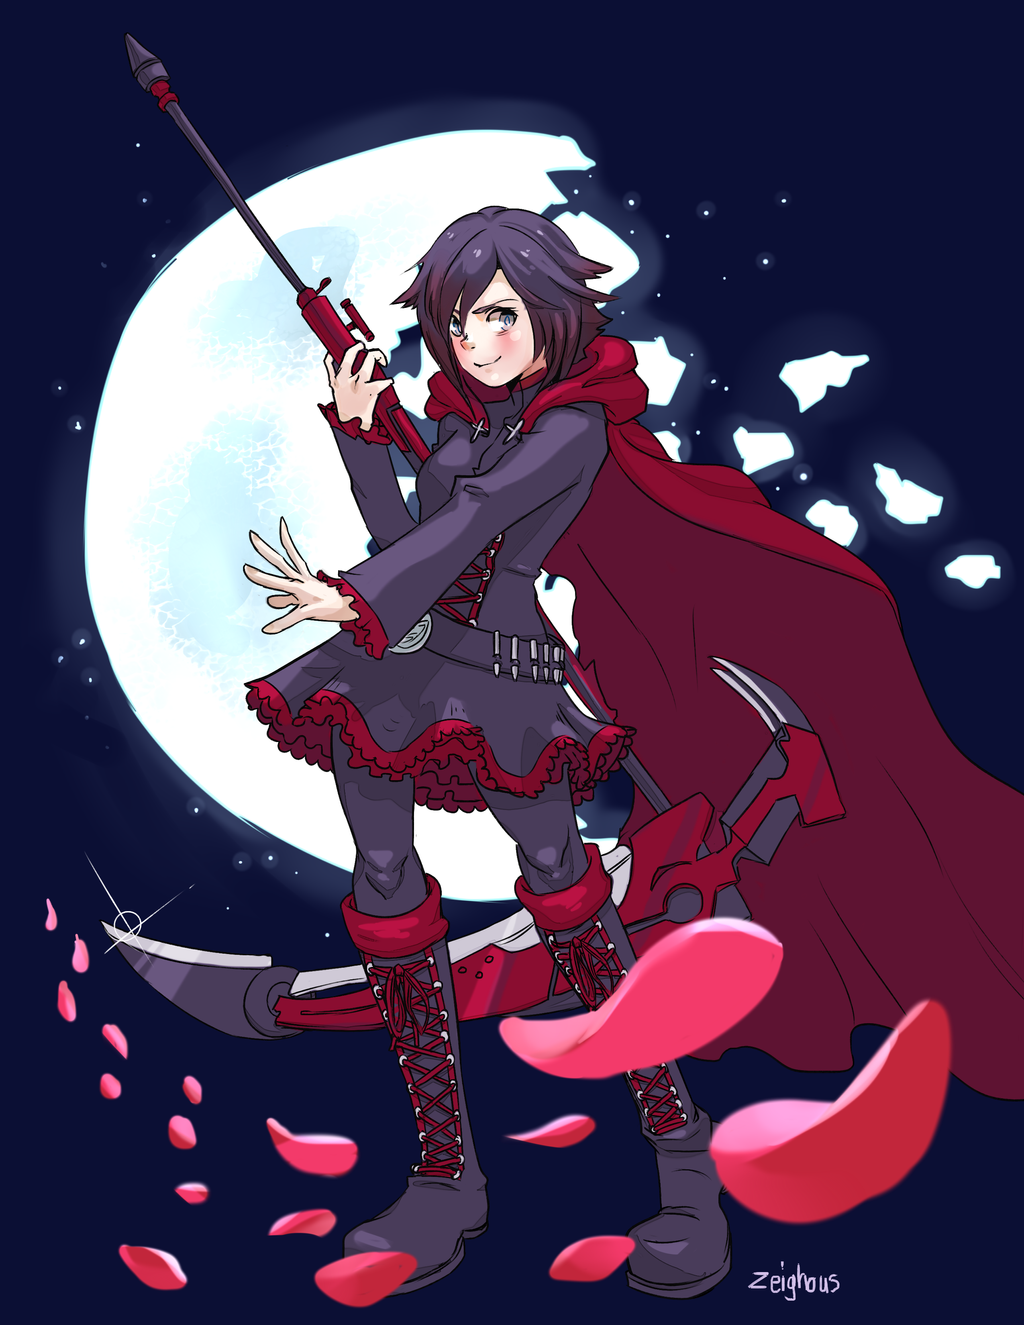 Rwby ruby rose by zeighous on deviantart - Rwby ruby rose fanart ...